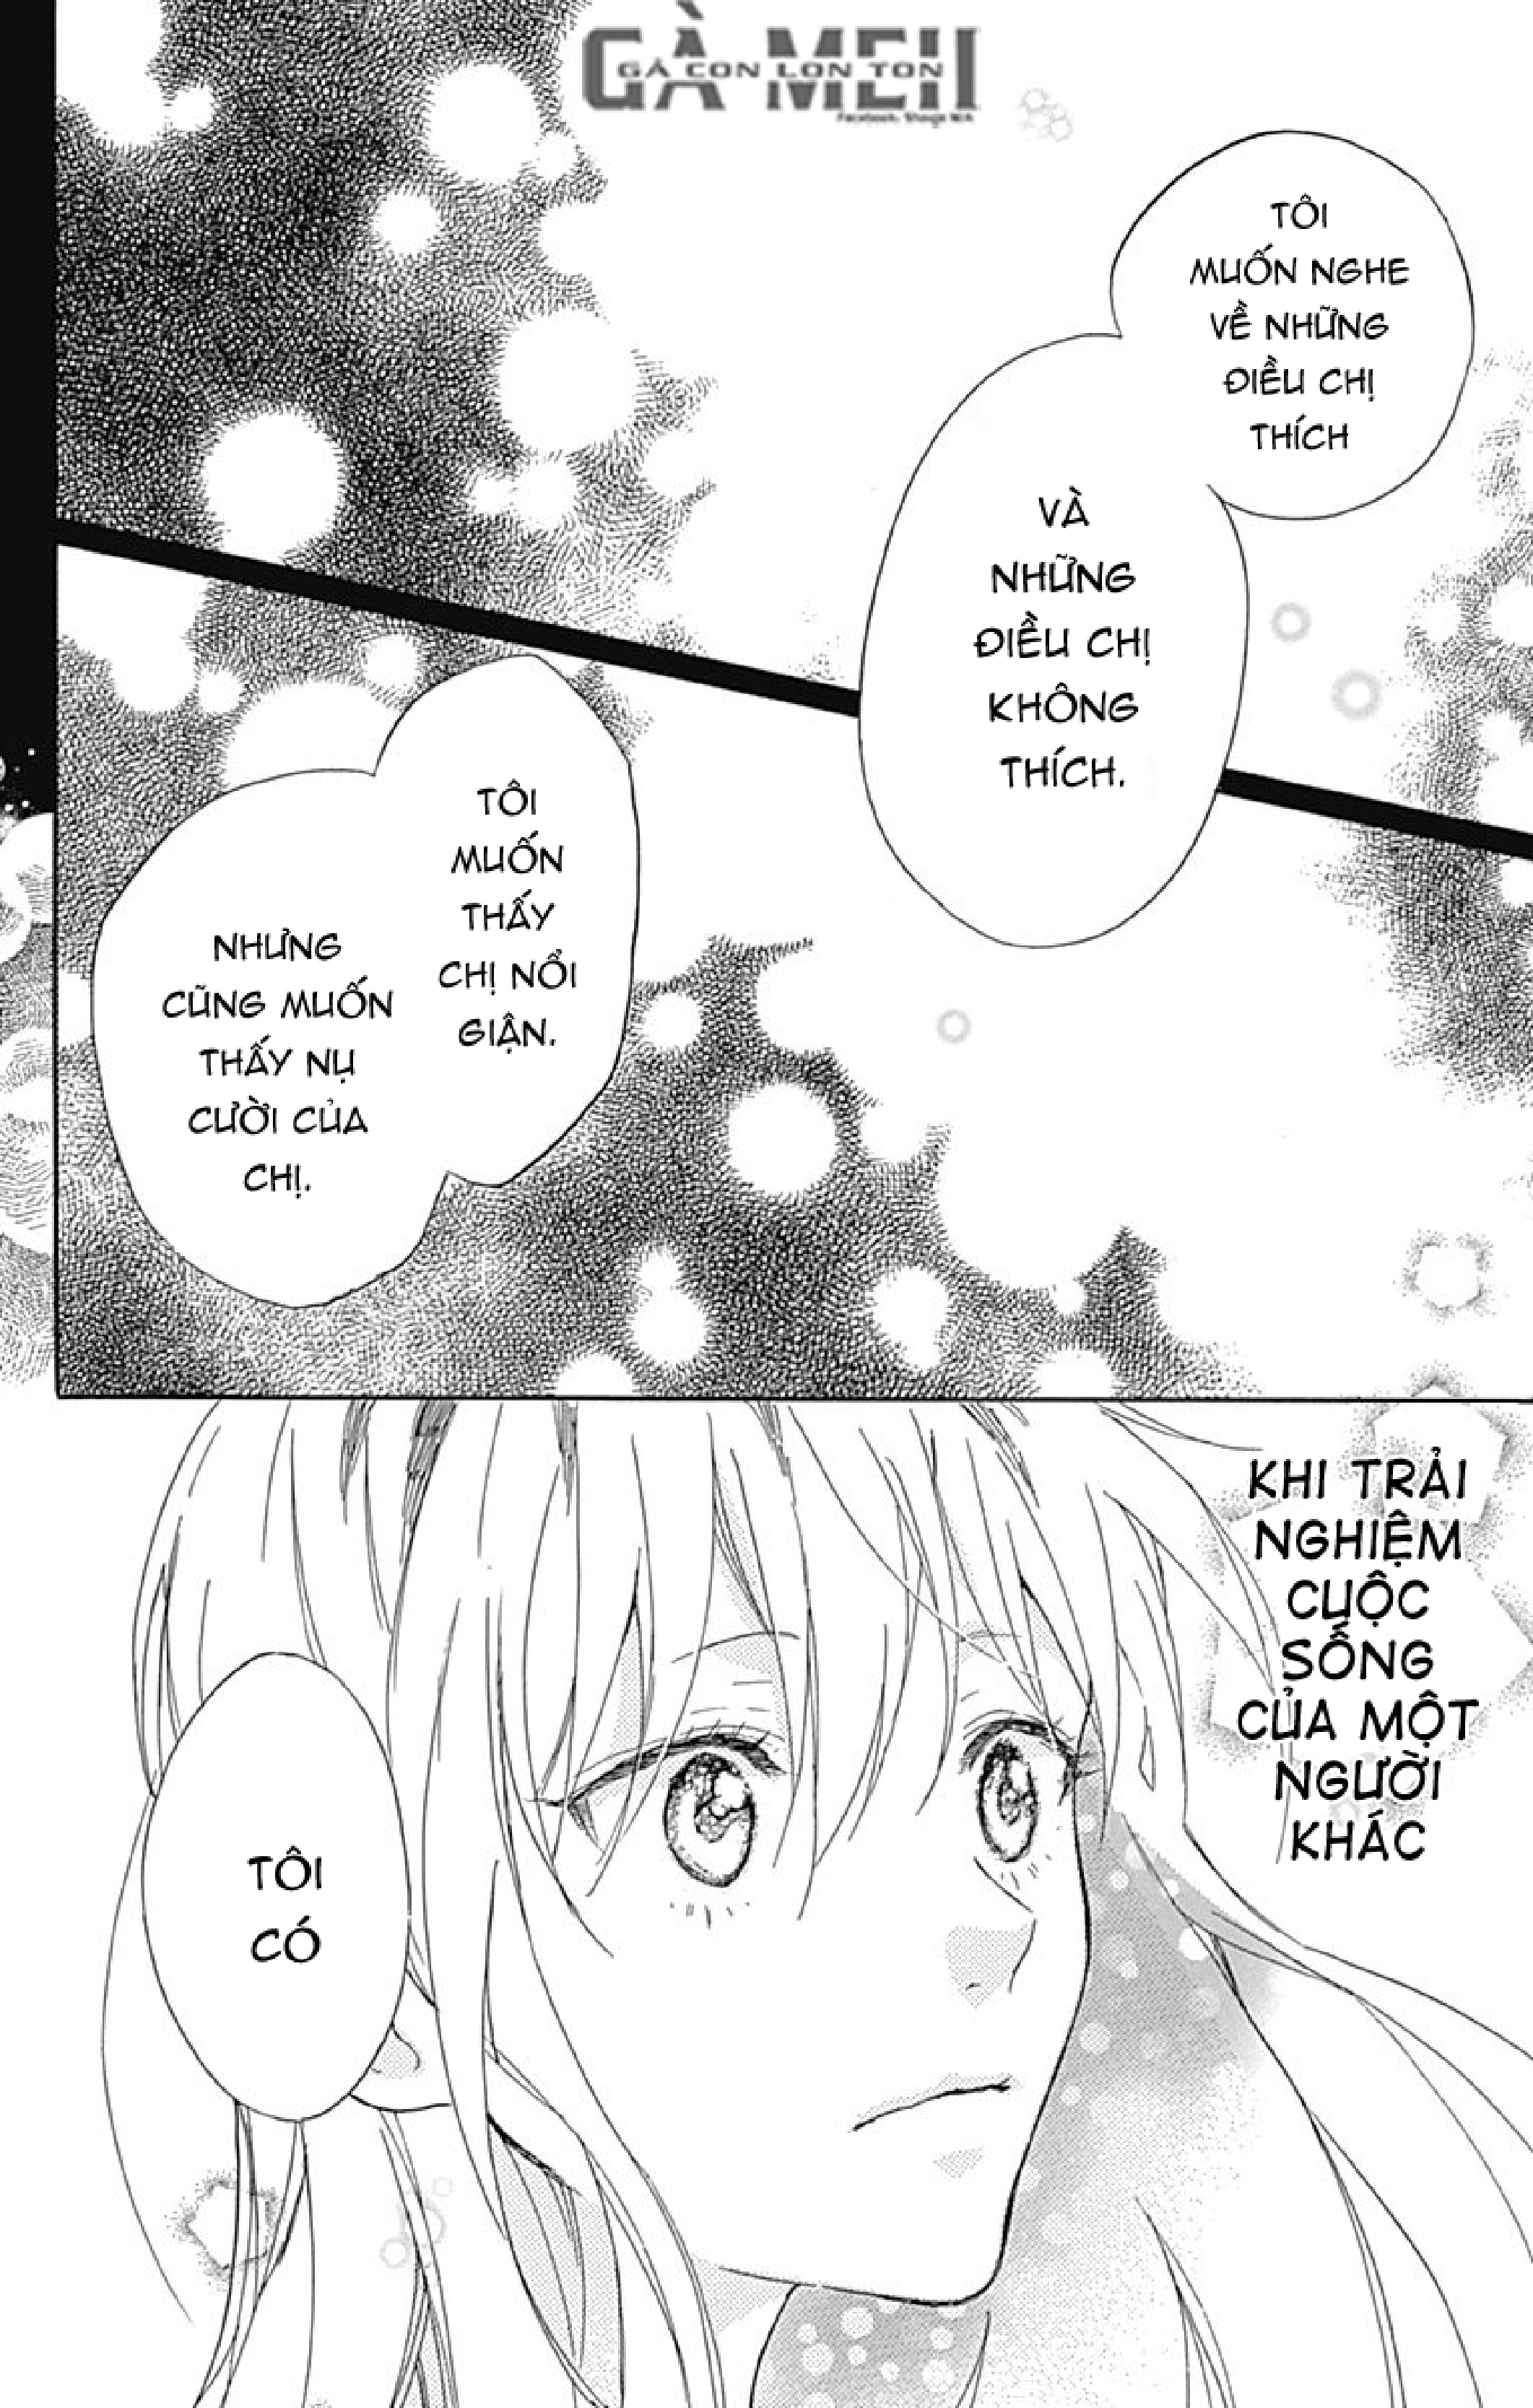 Stella To Mille Feuille chap 3 - Trang 40